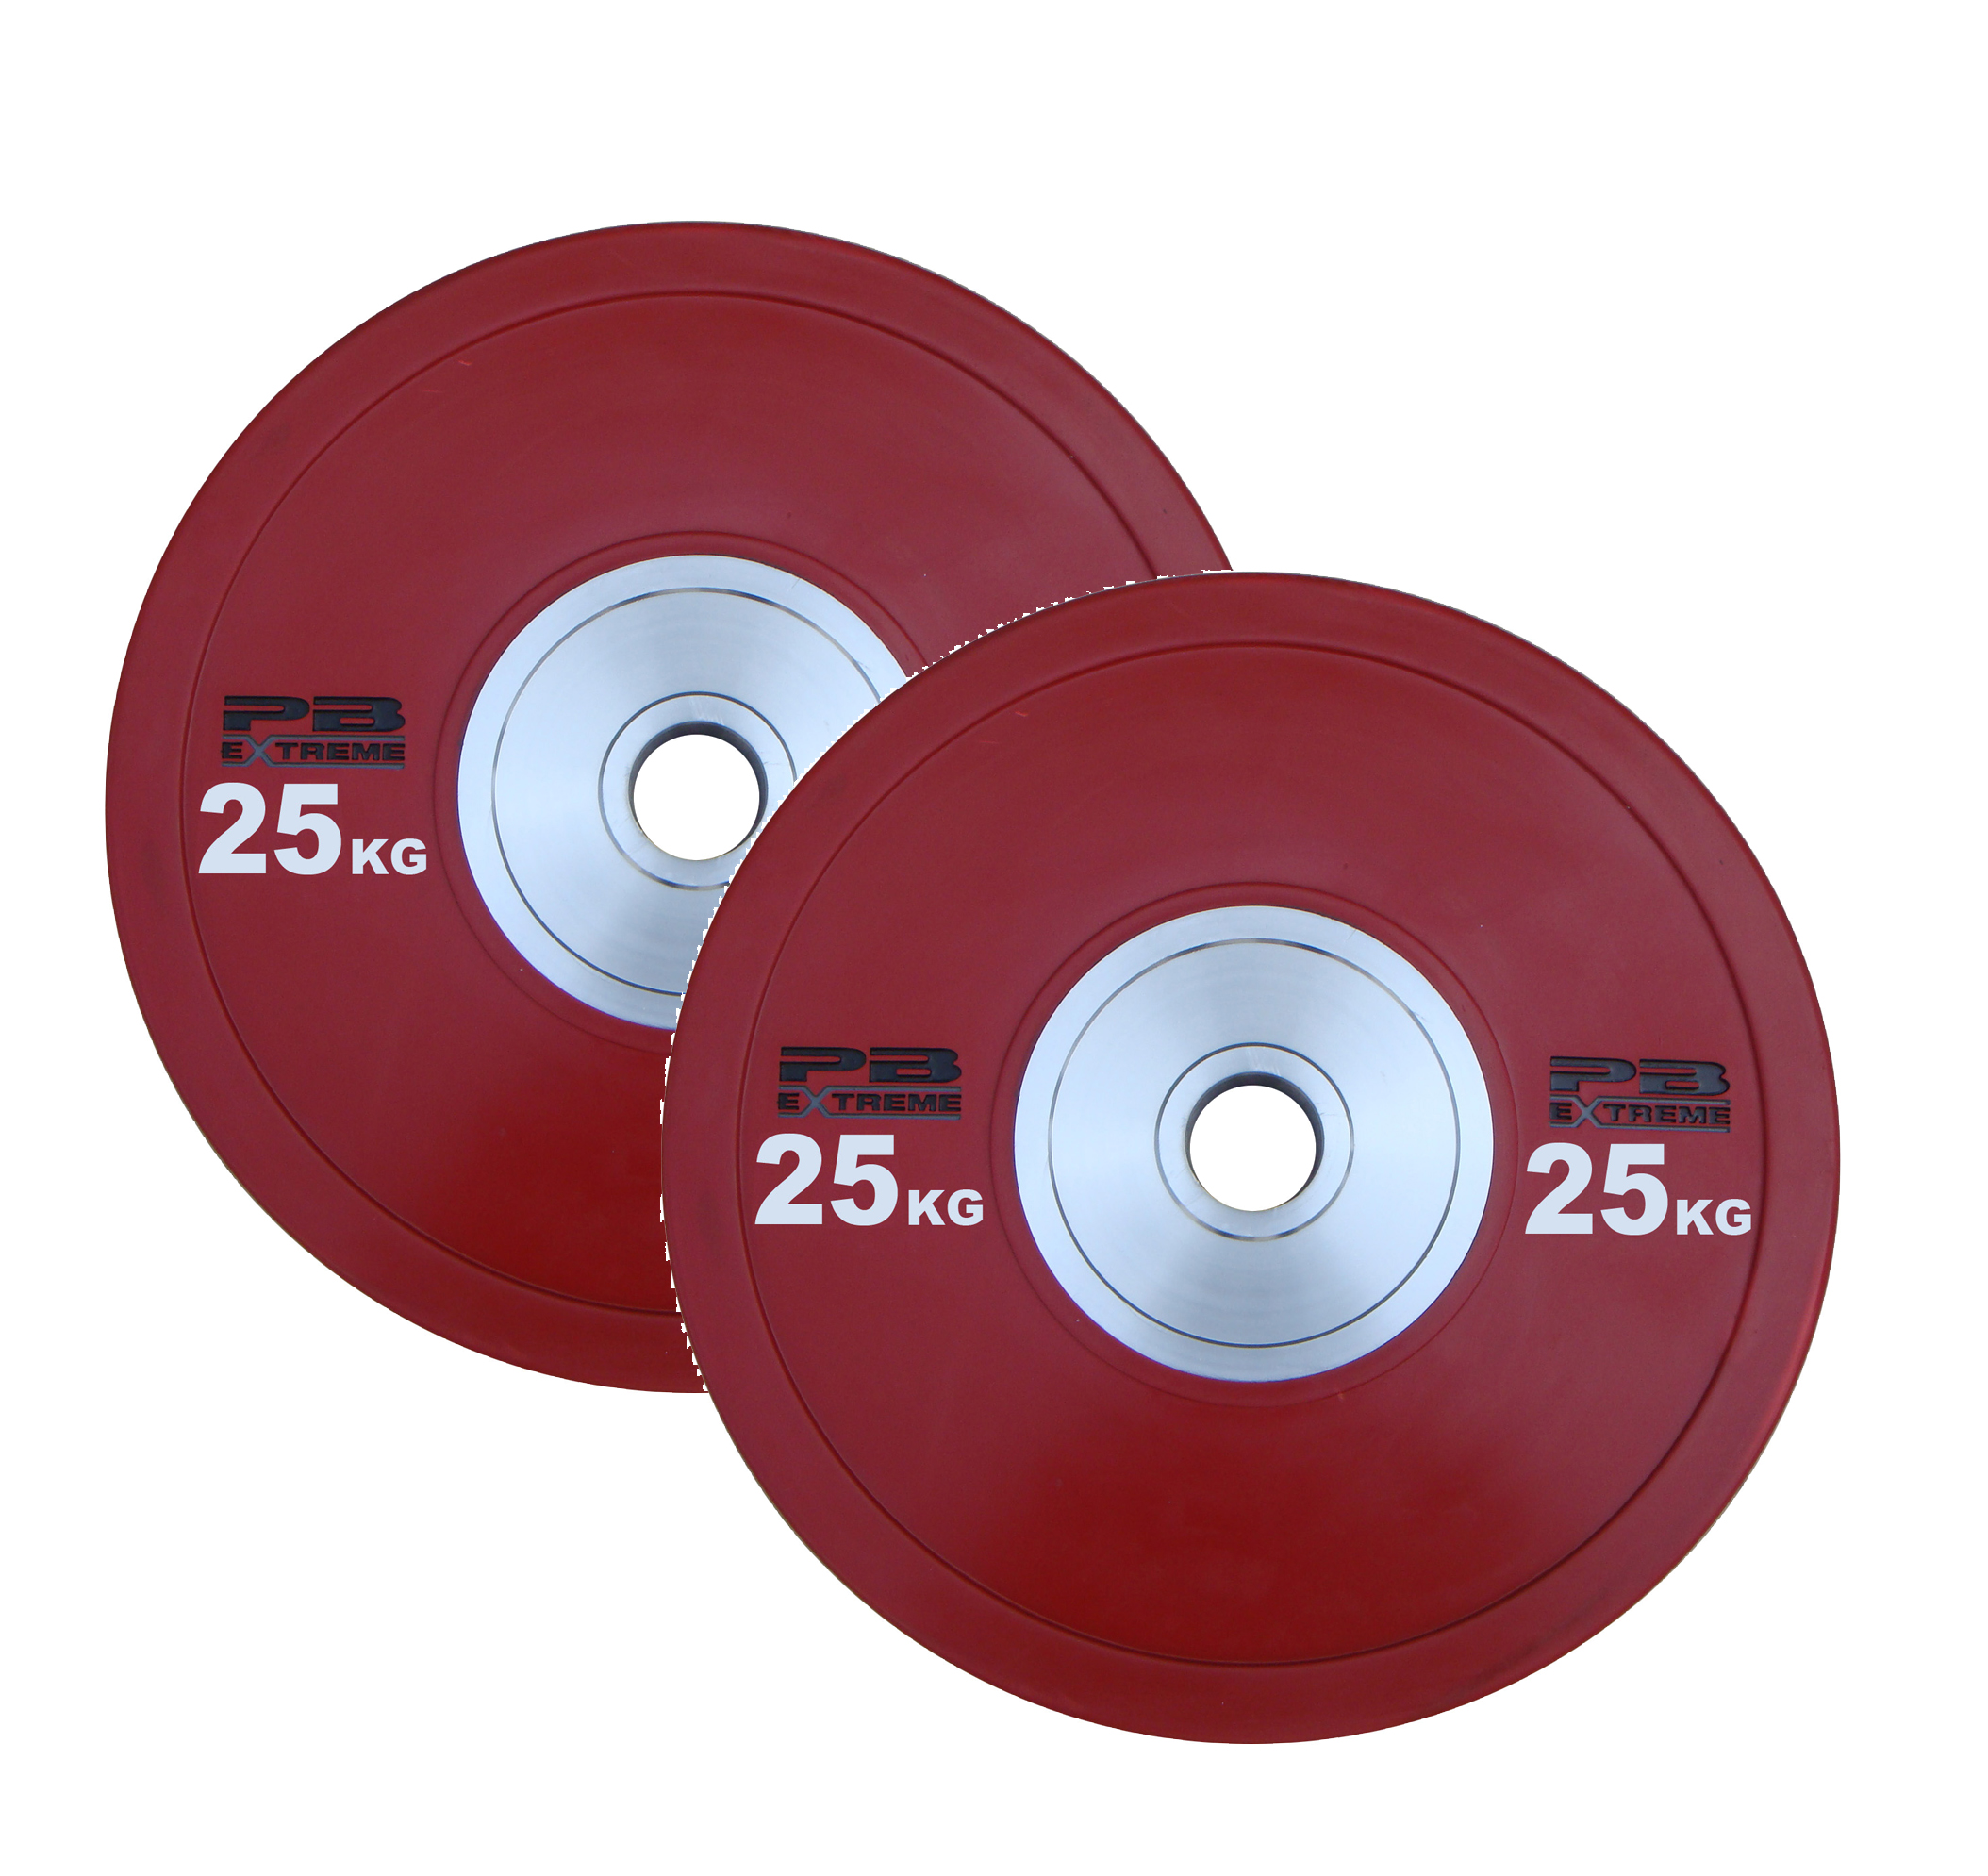 PB Extreme Competition Bumper Plate - Rot 25kg (Paar)